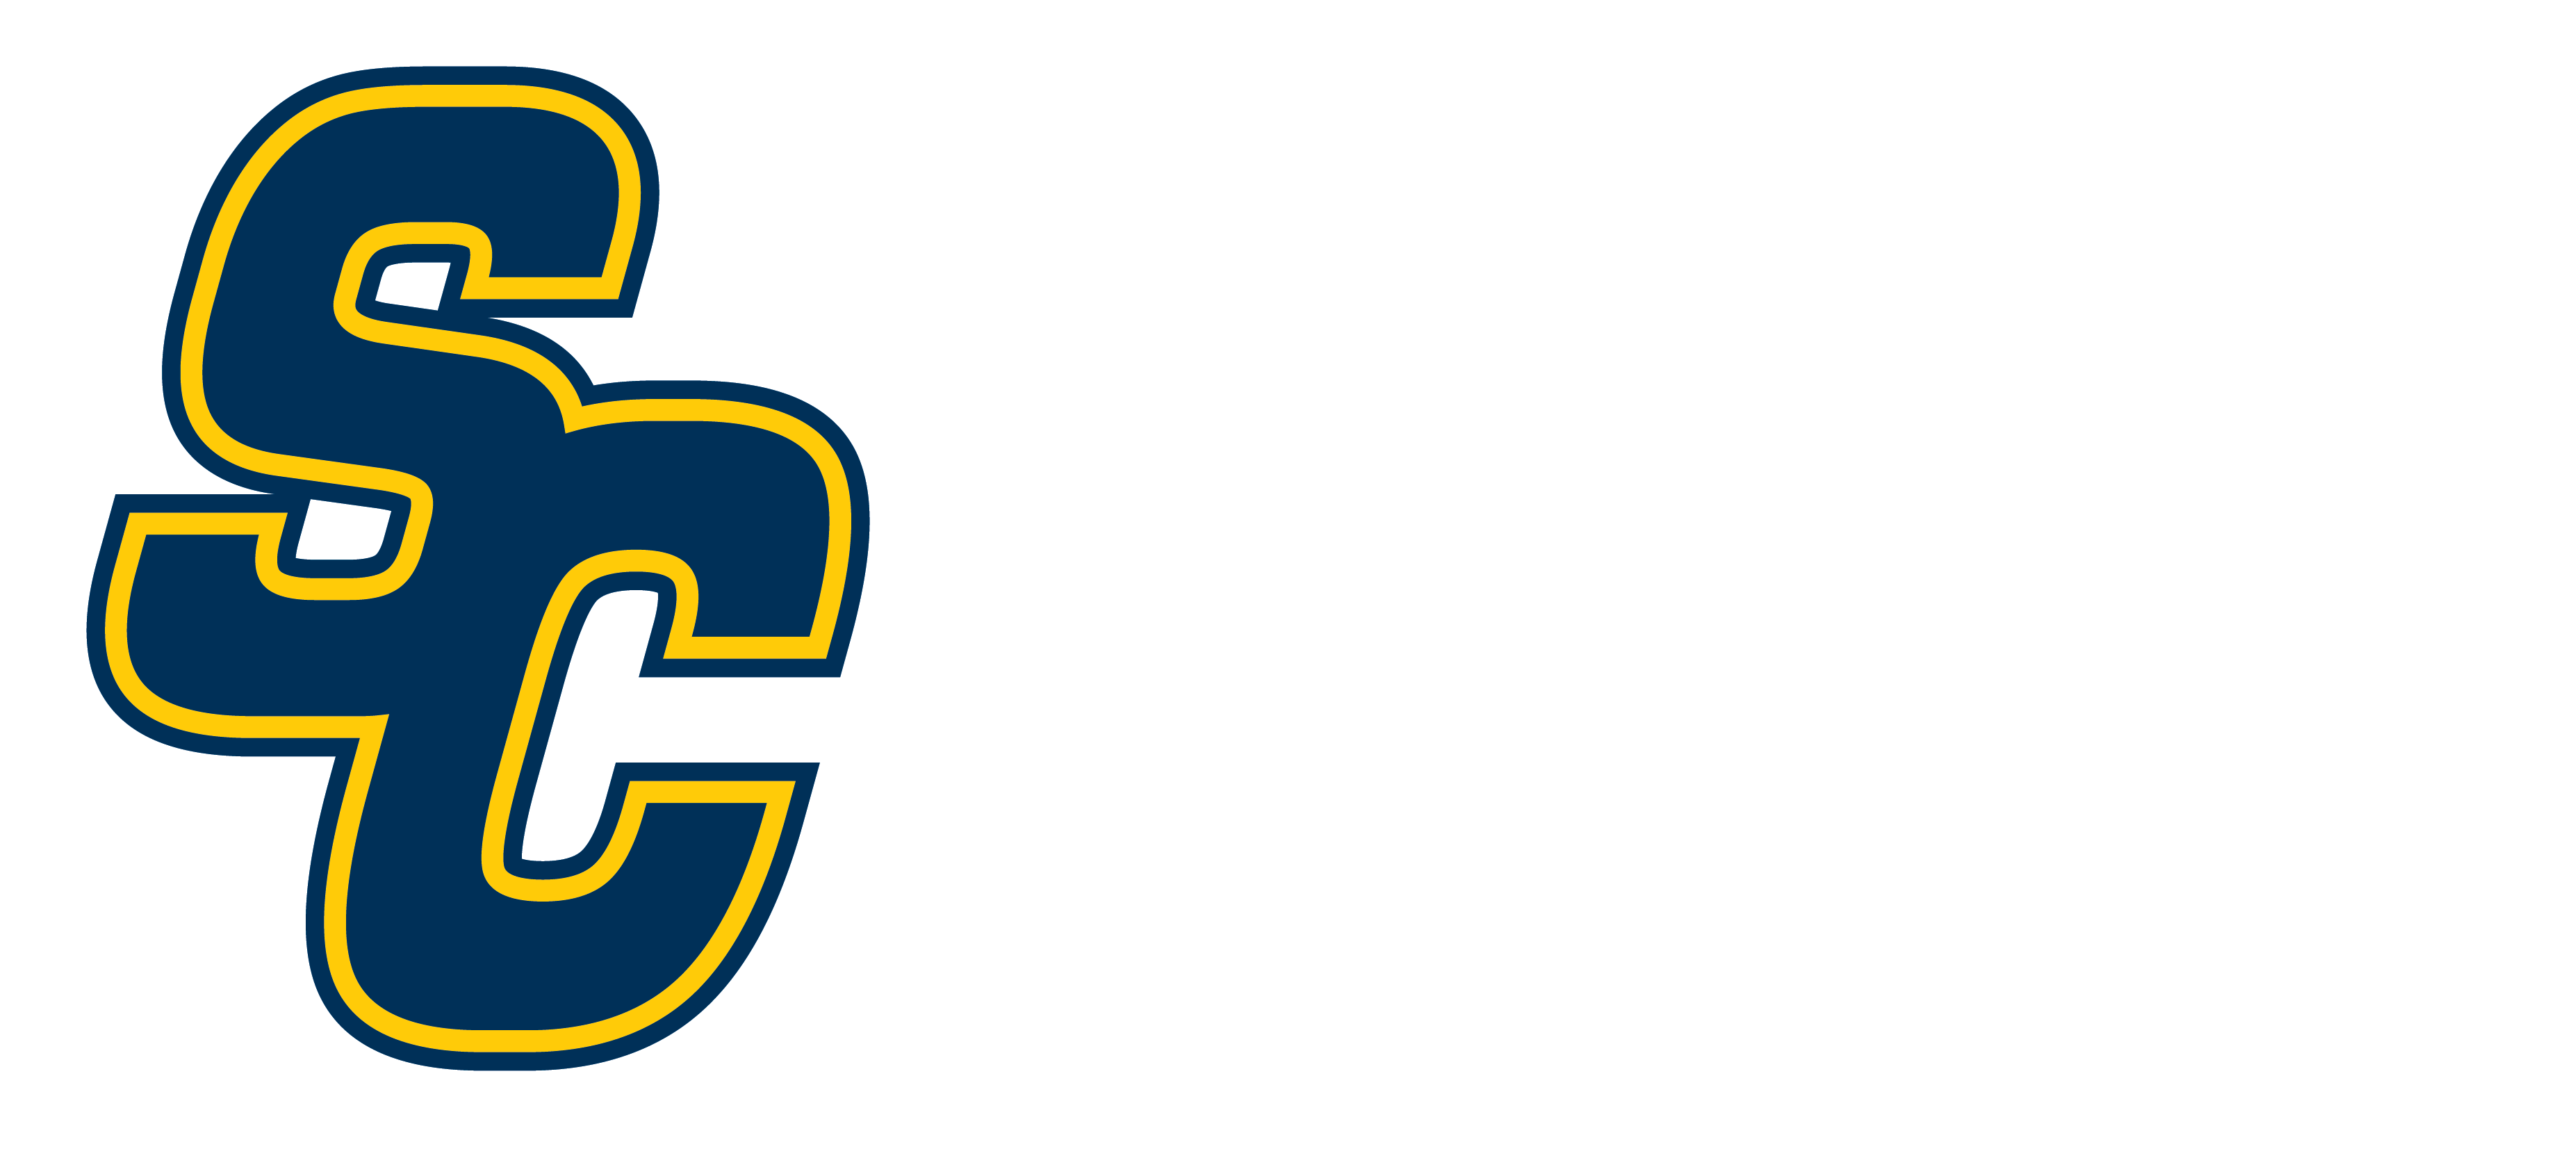 St. Clair County Community College logo